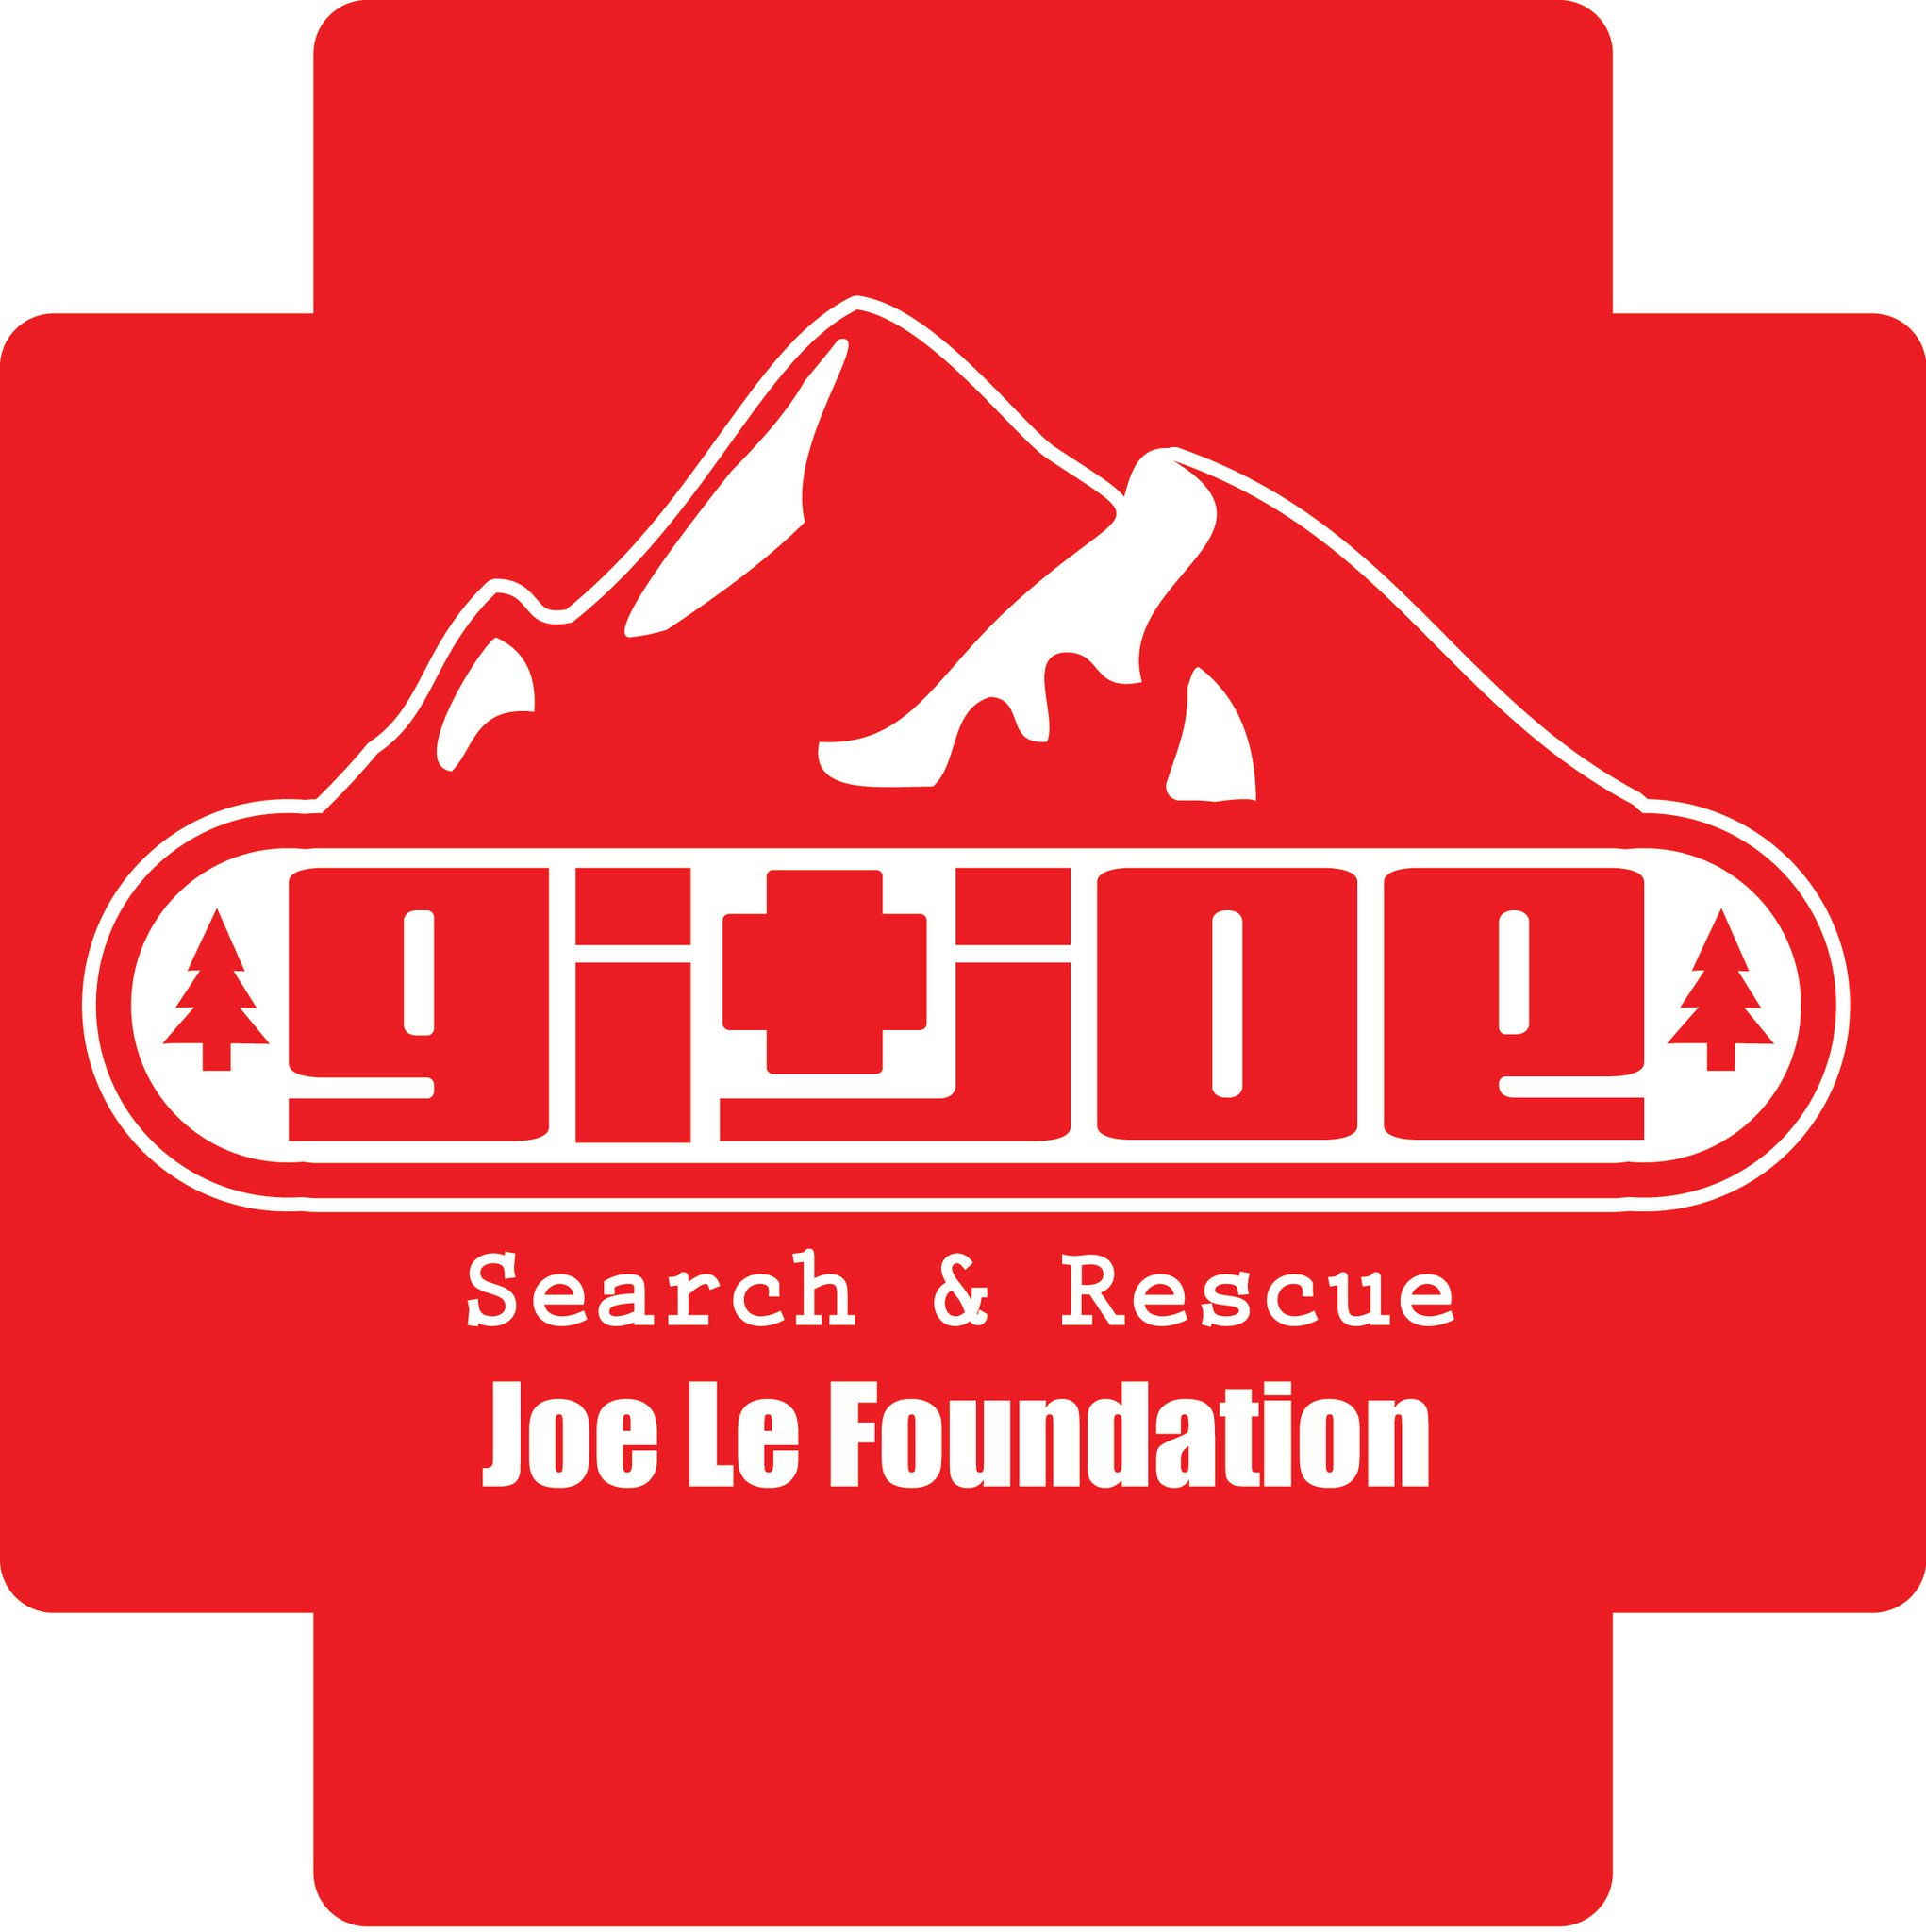 G.I. Joe Search and Rescue - The Joe Le Foundation logo